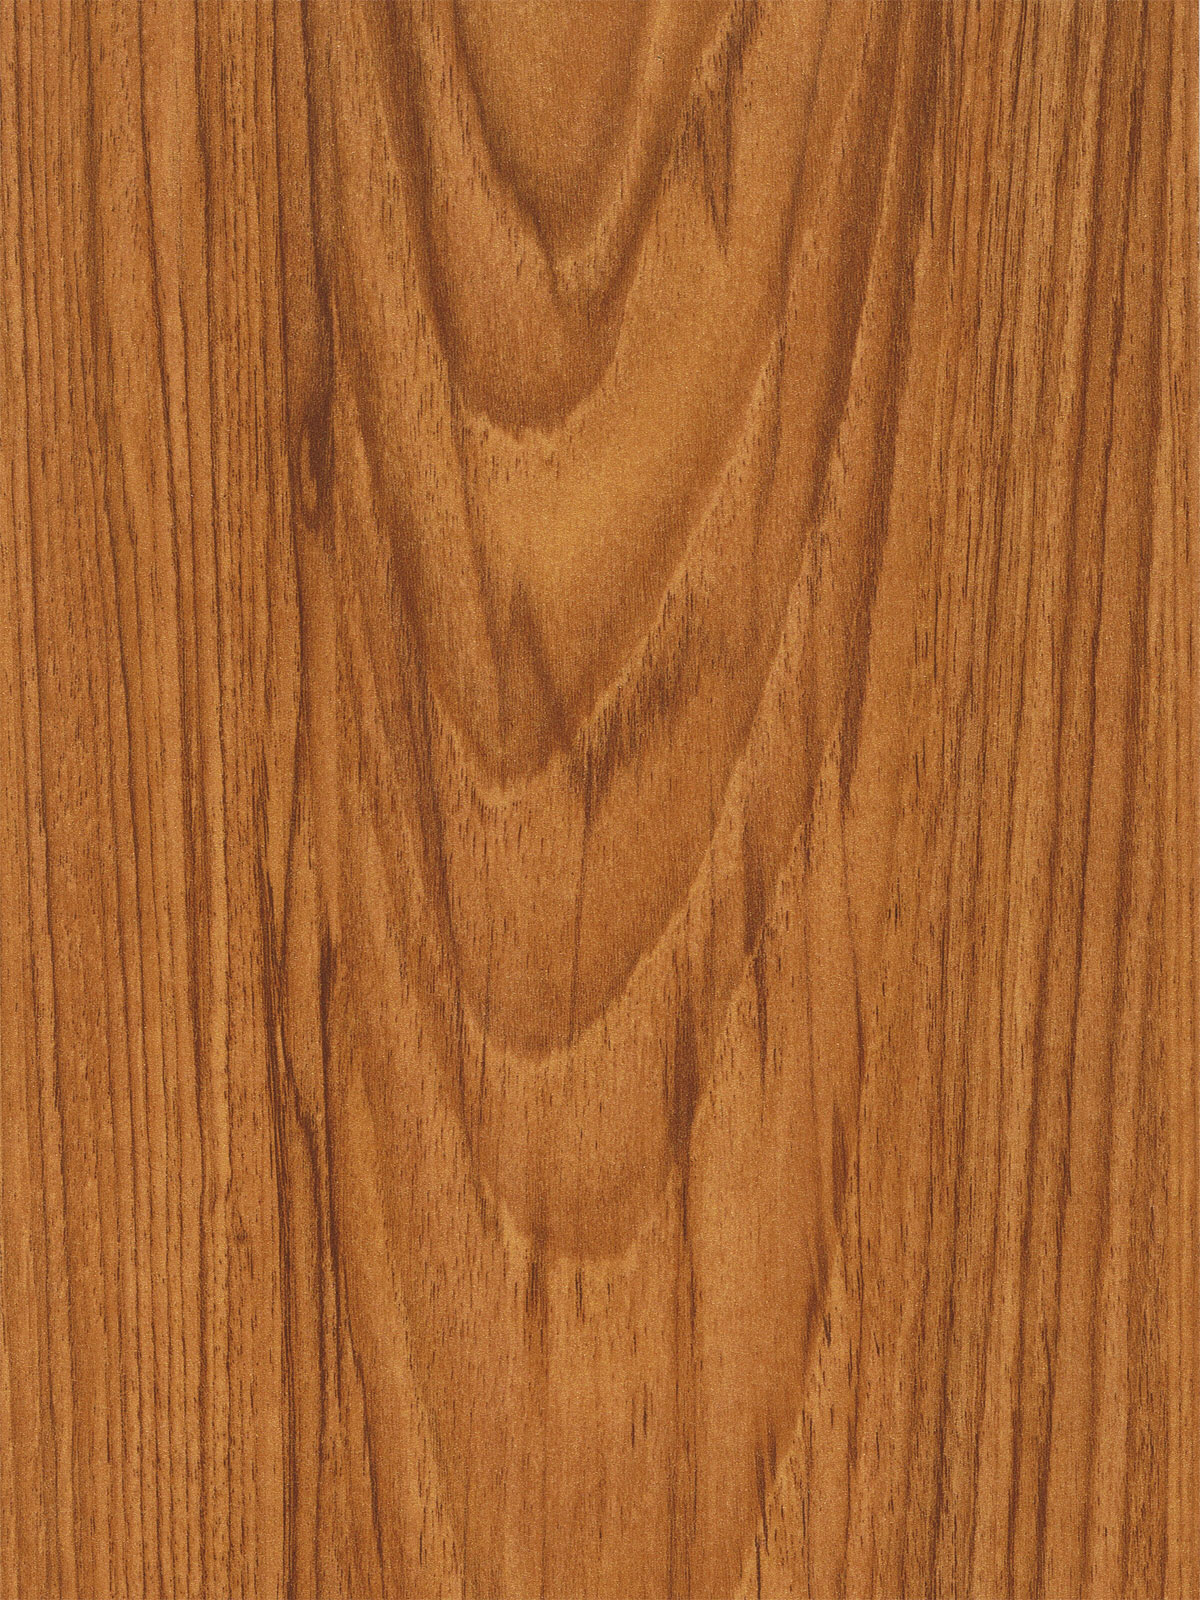 Welcome To China Laminate Flooring Manufacturer Of